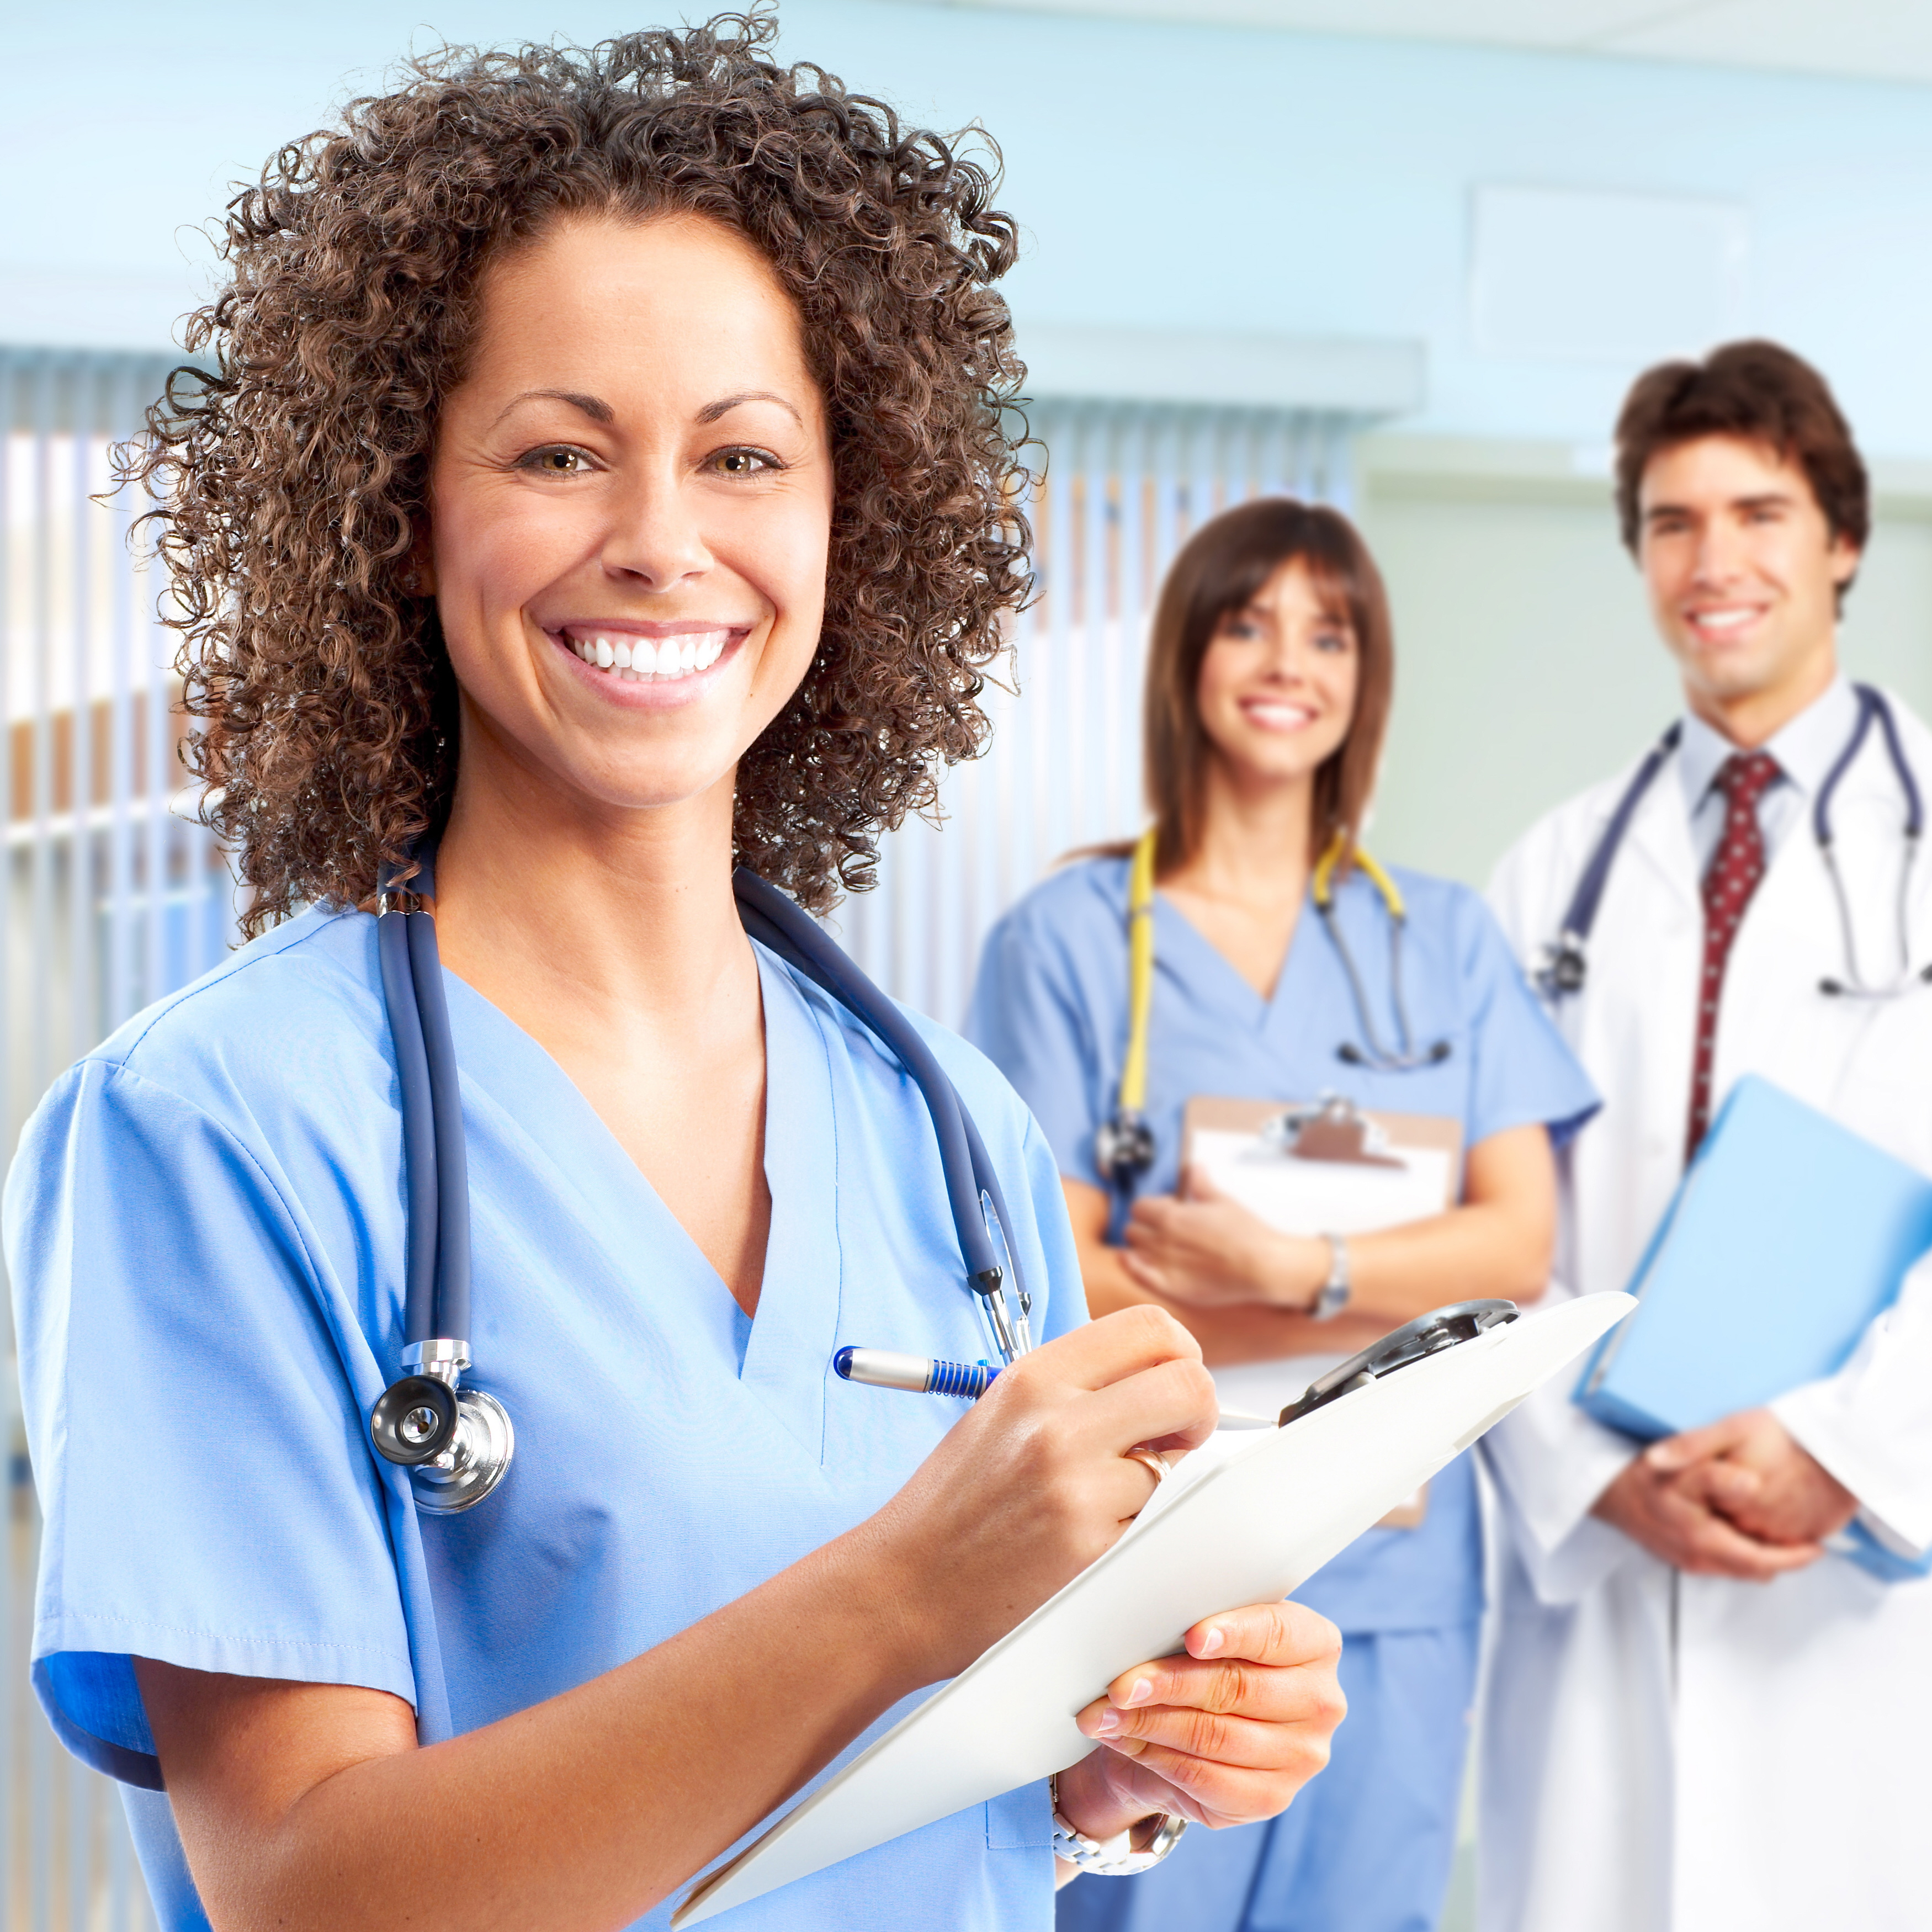 bigstock-Doctor-And-Nurses-5300612.jpg